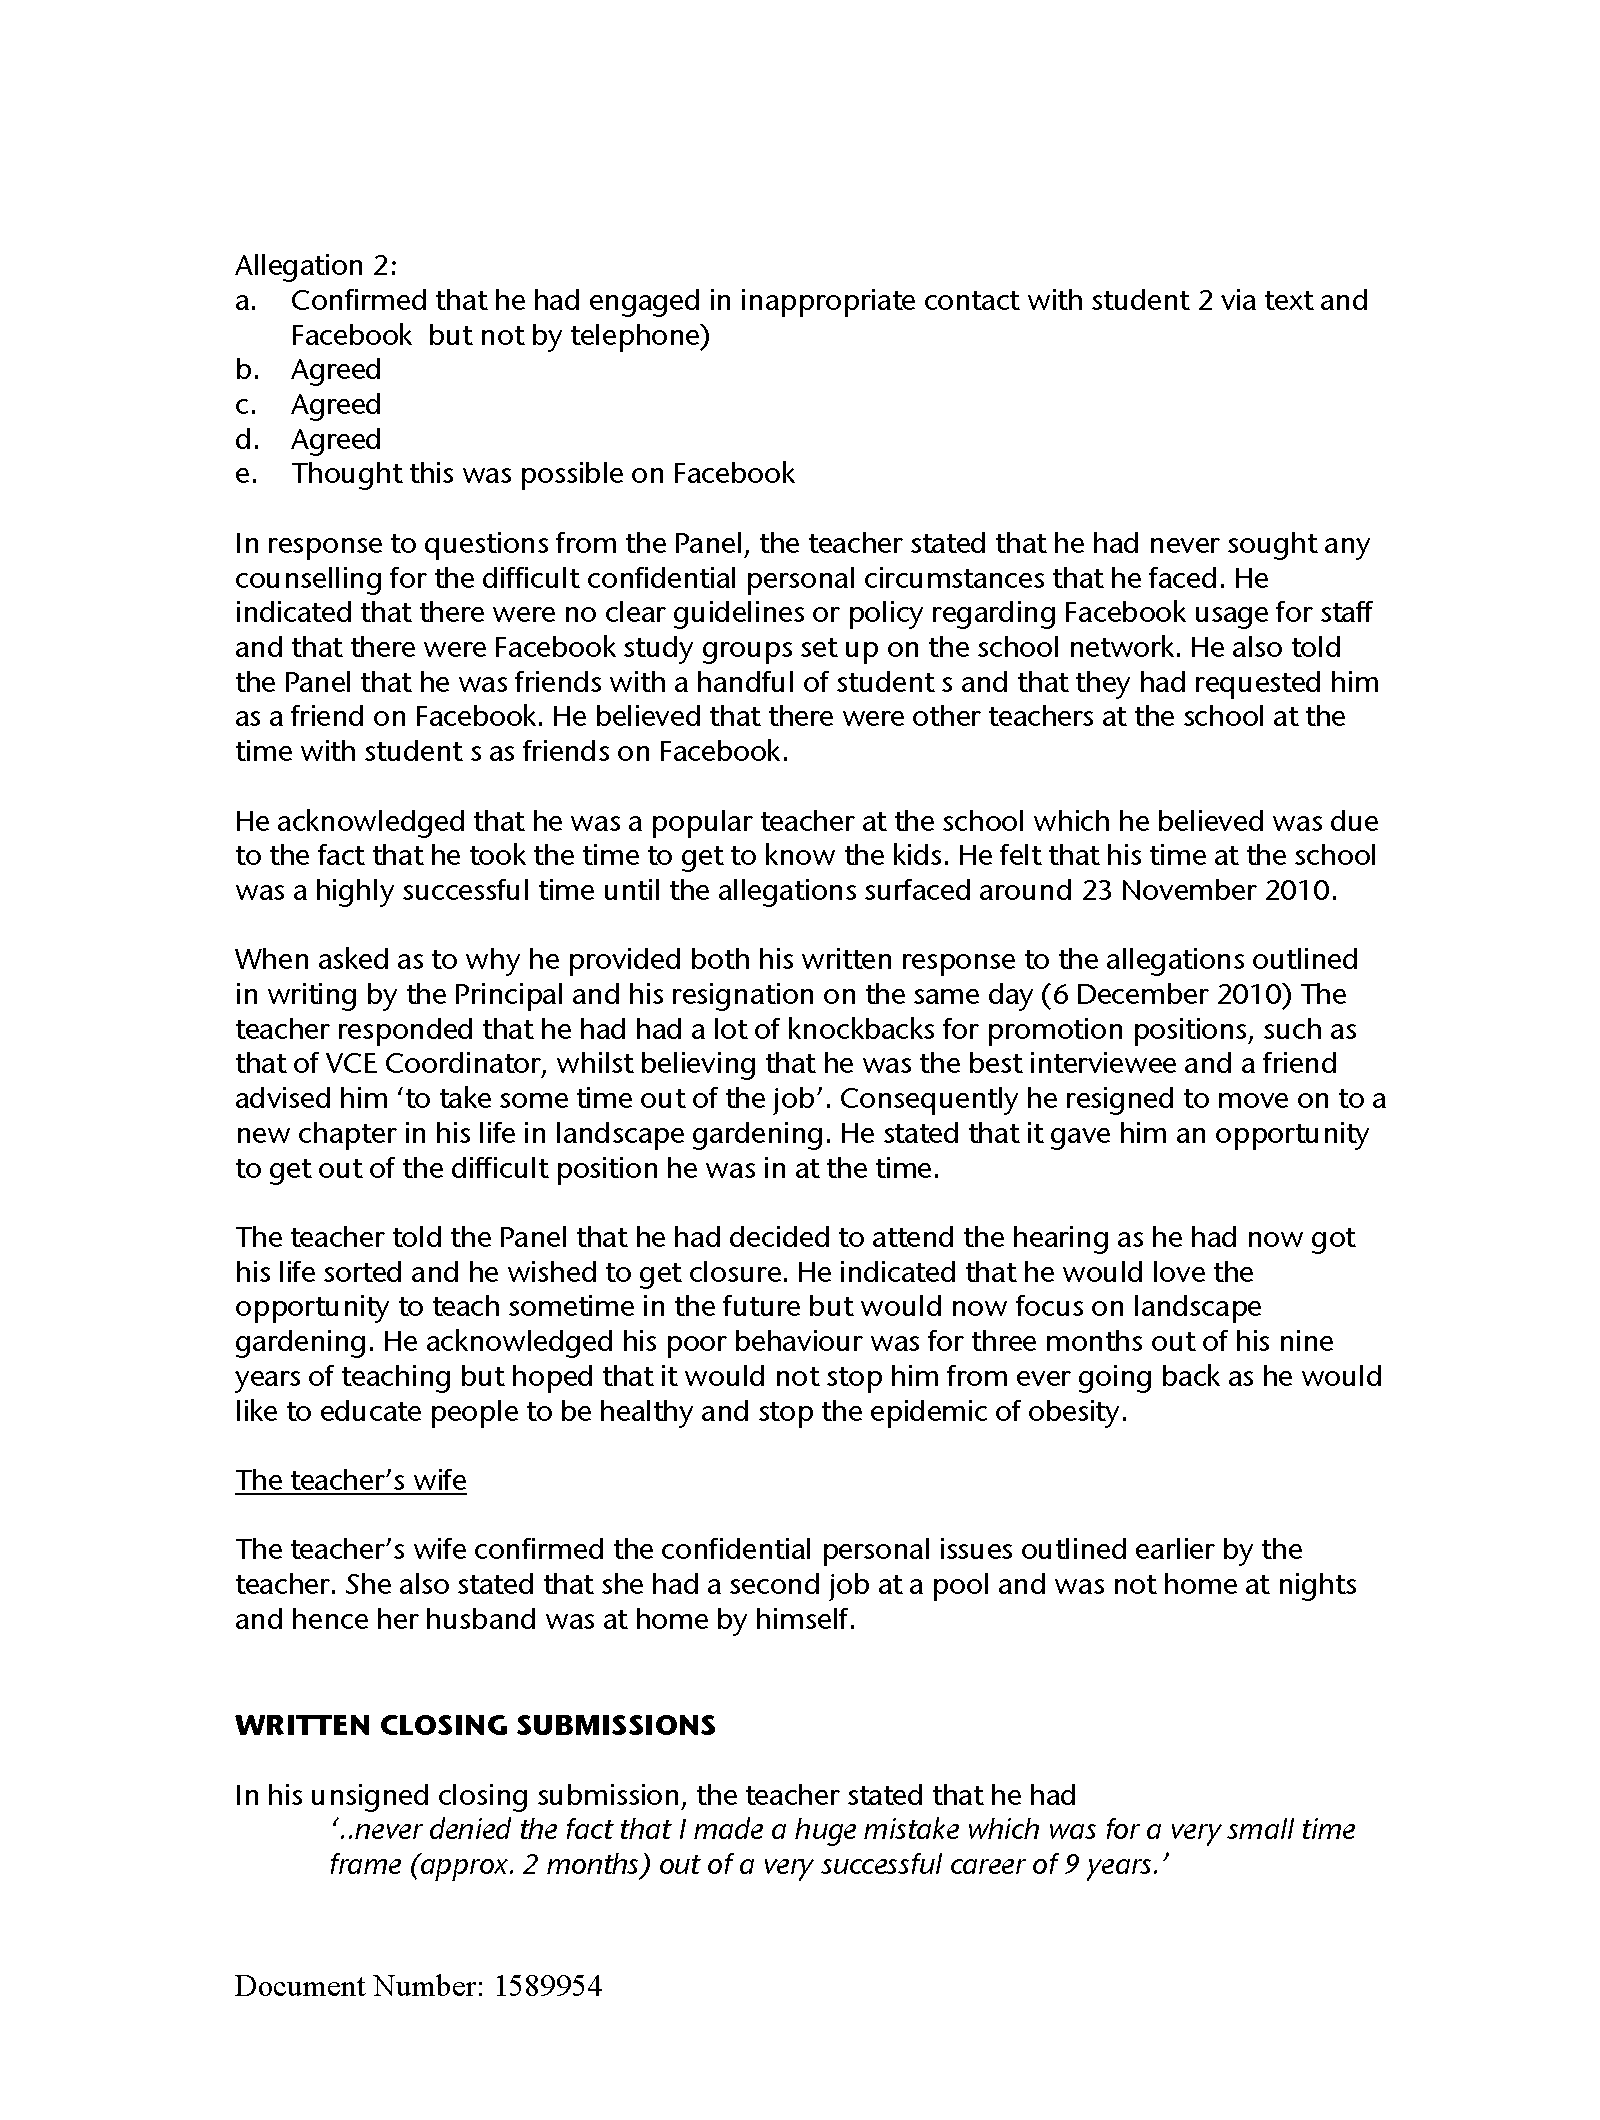 Copy of SanitisedPleydellDecision09.png